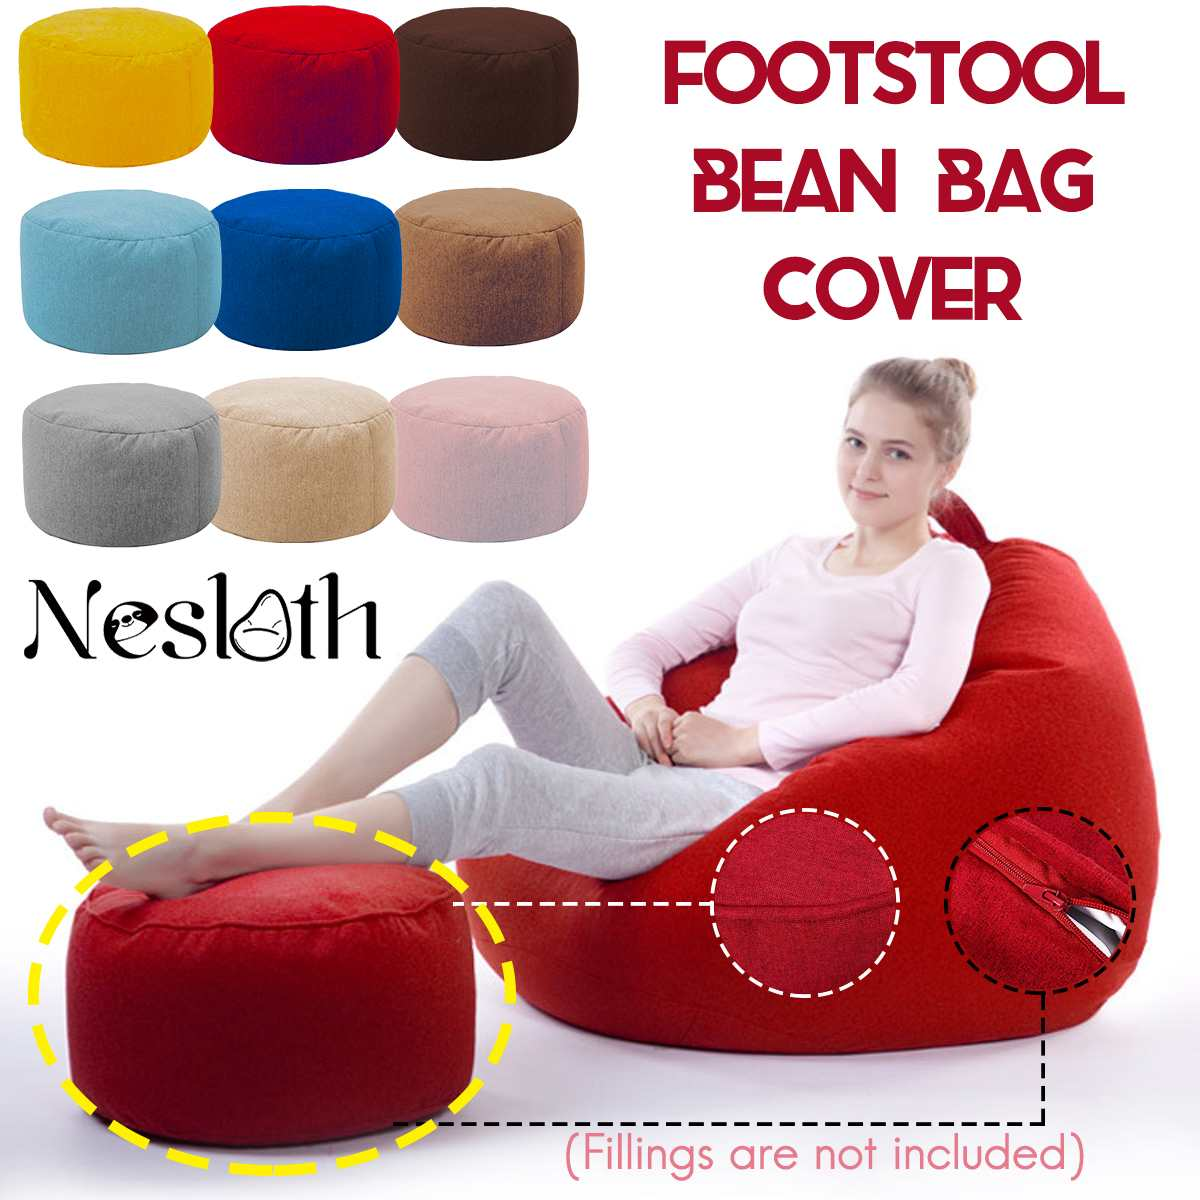 Nesloth Small Round Beanbag Sofas Cover Without Filler Upholstered Velvet Footstool Chair Pouf Puff Couch Tatami Living Room New